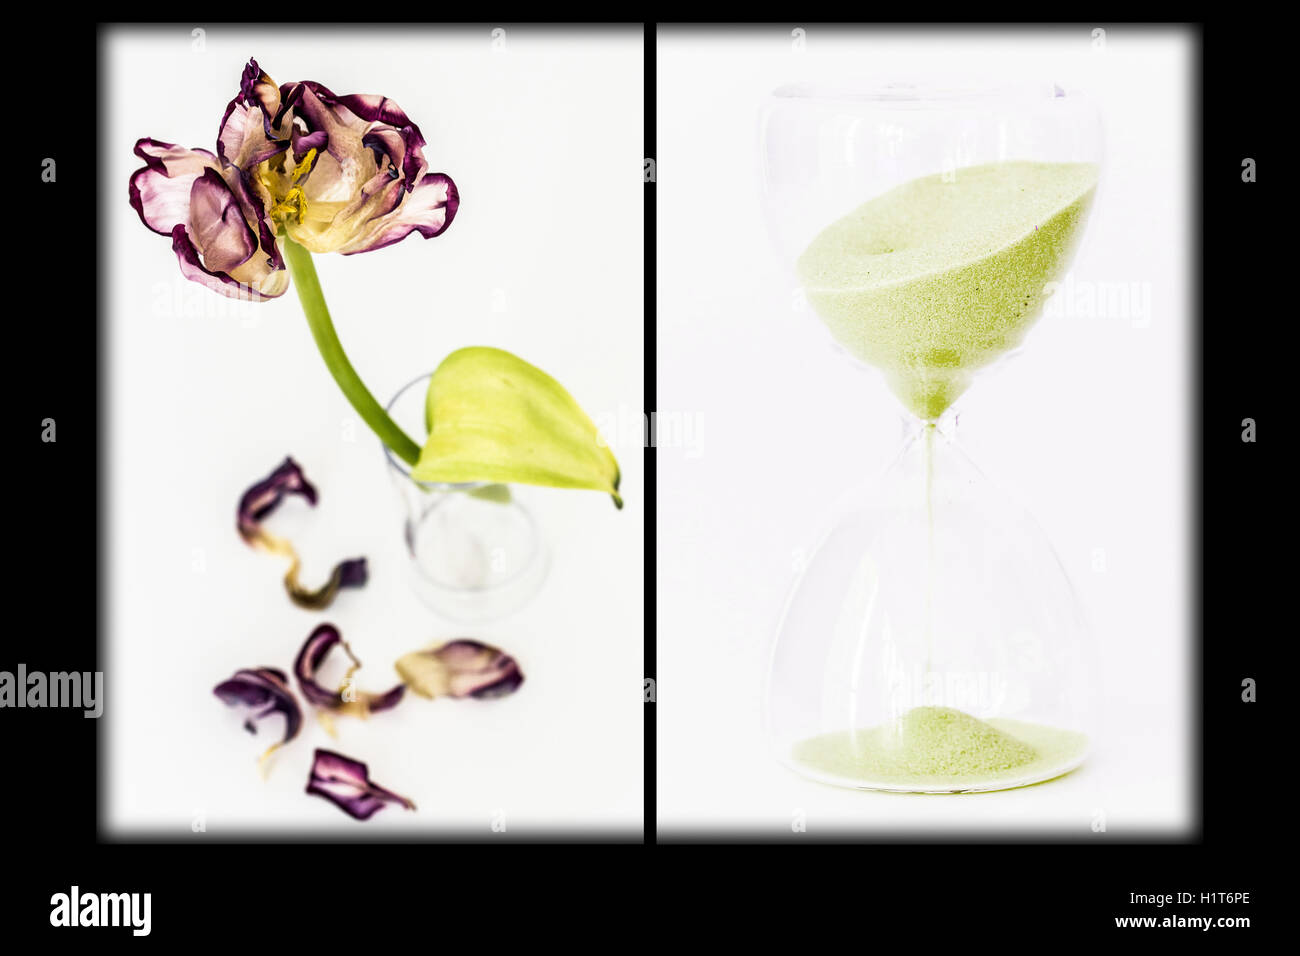 Composite image of an hourglass and a wilted flower. conceptual image of aging. - Stock Image